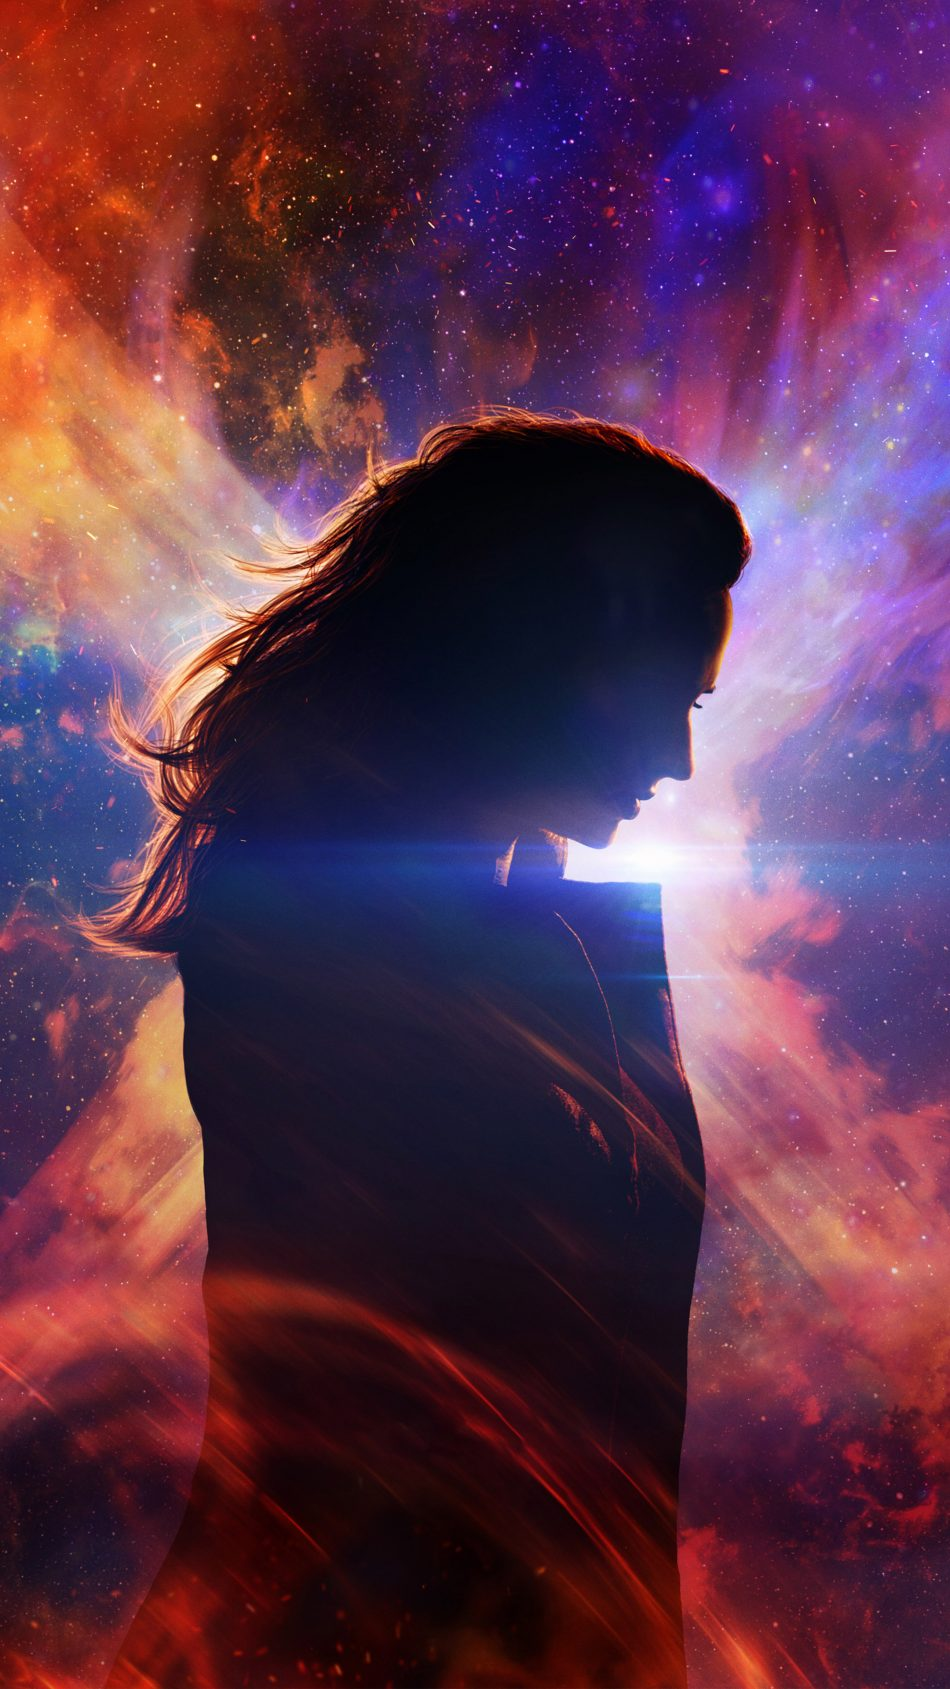 Download X Men Dark Phoenix 2019 Free Pure 4k Ultra Hd Mobile Wallpaper